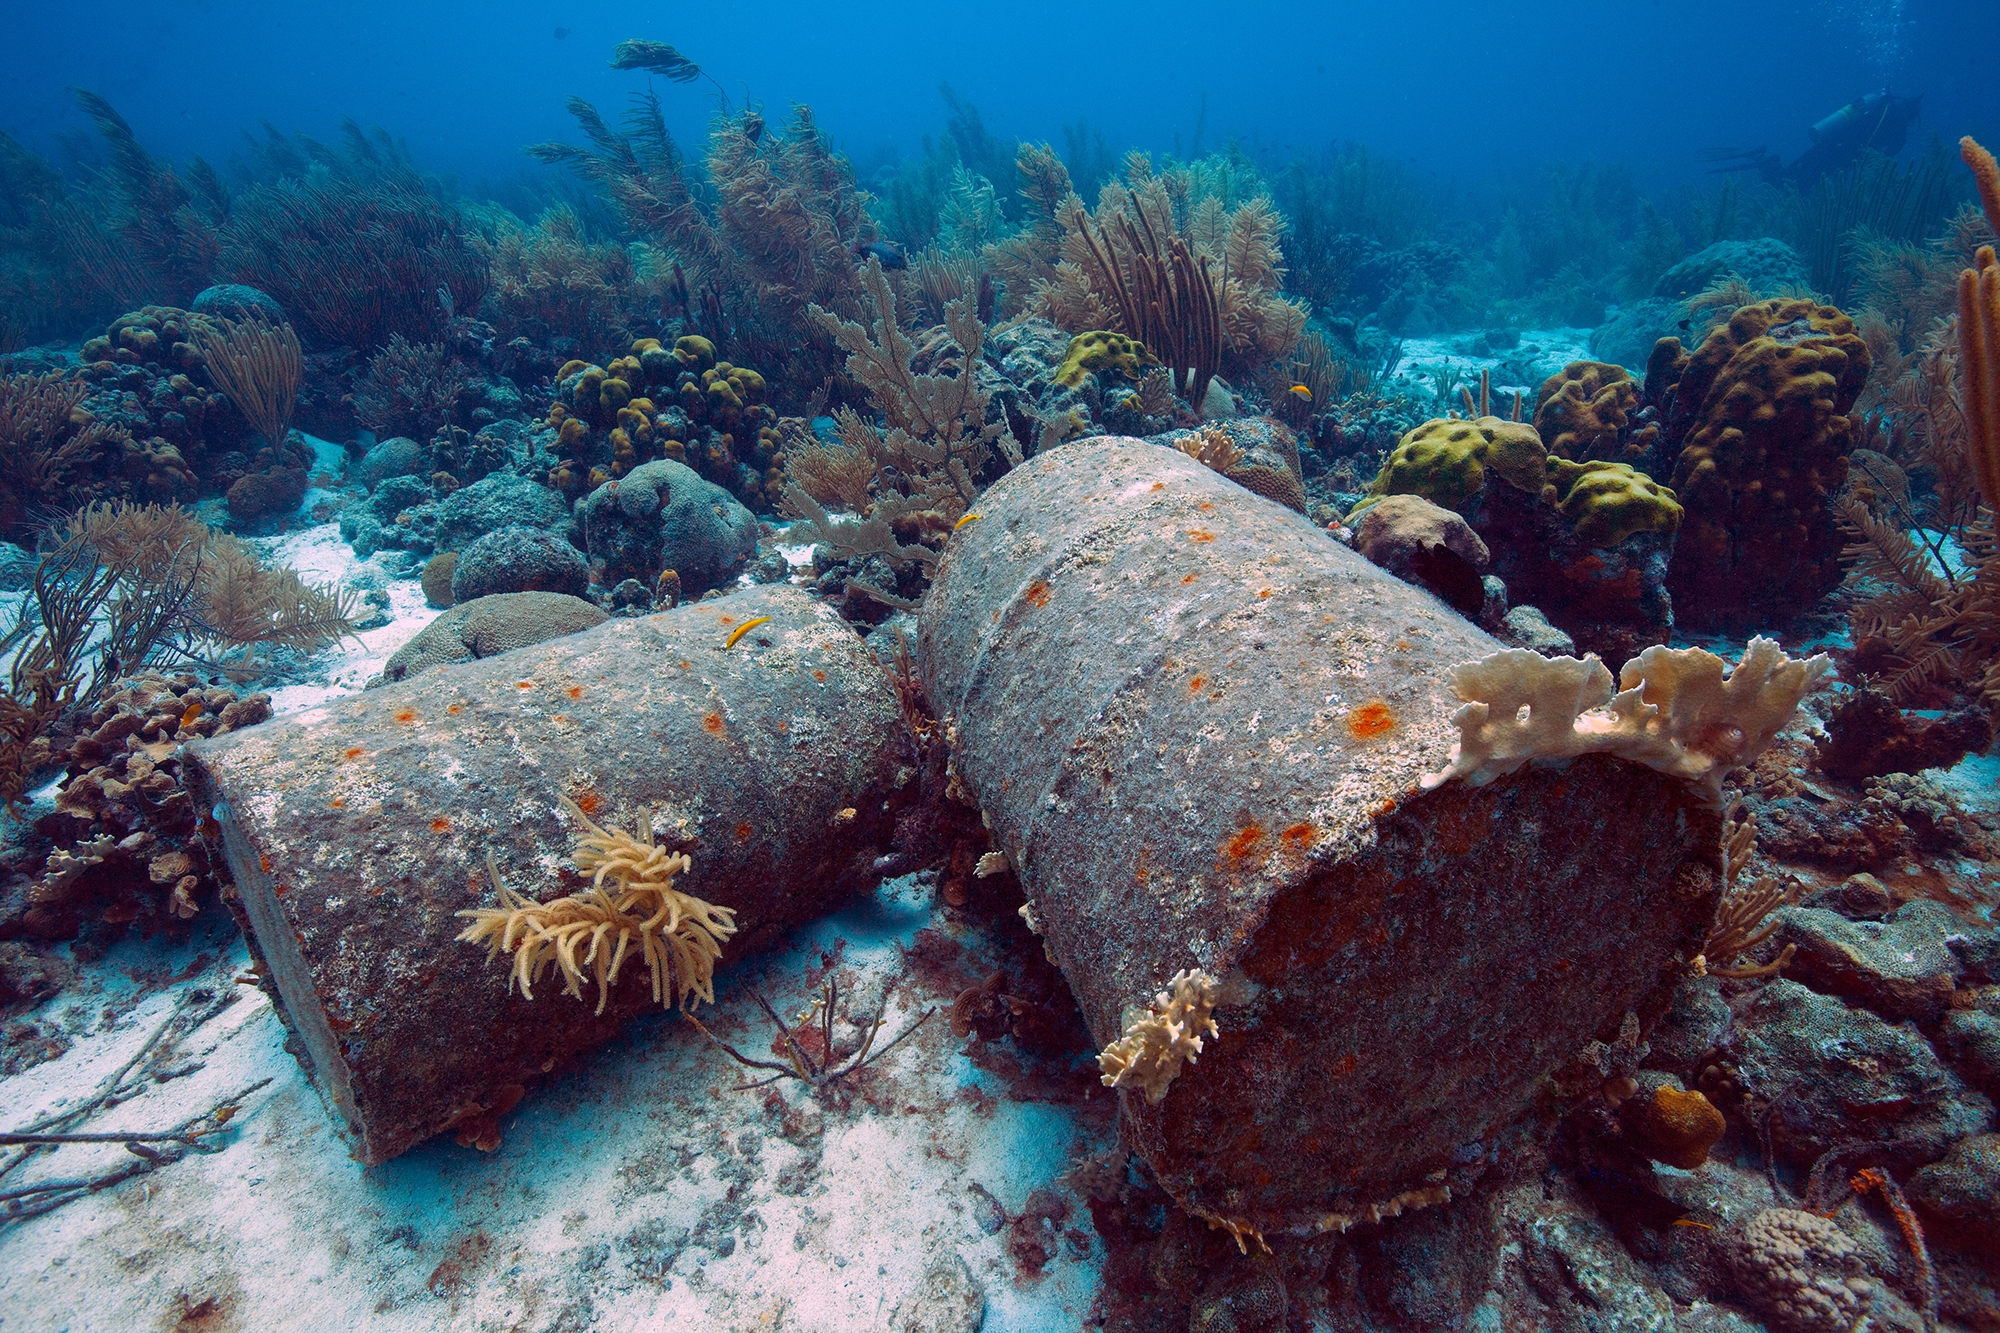 Discarded oil drums litter the bottom in Grenada CREDIT: Jill heinerth / coral reef image bank